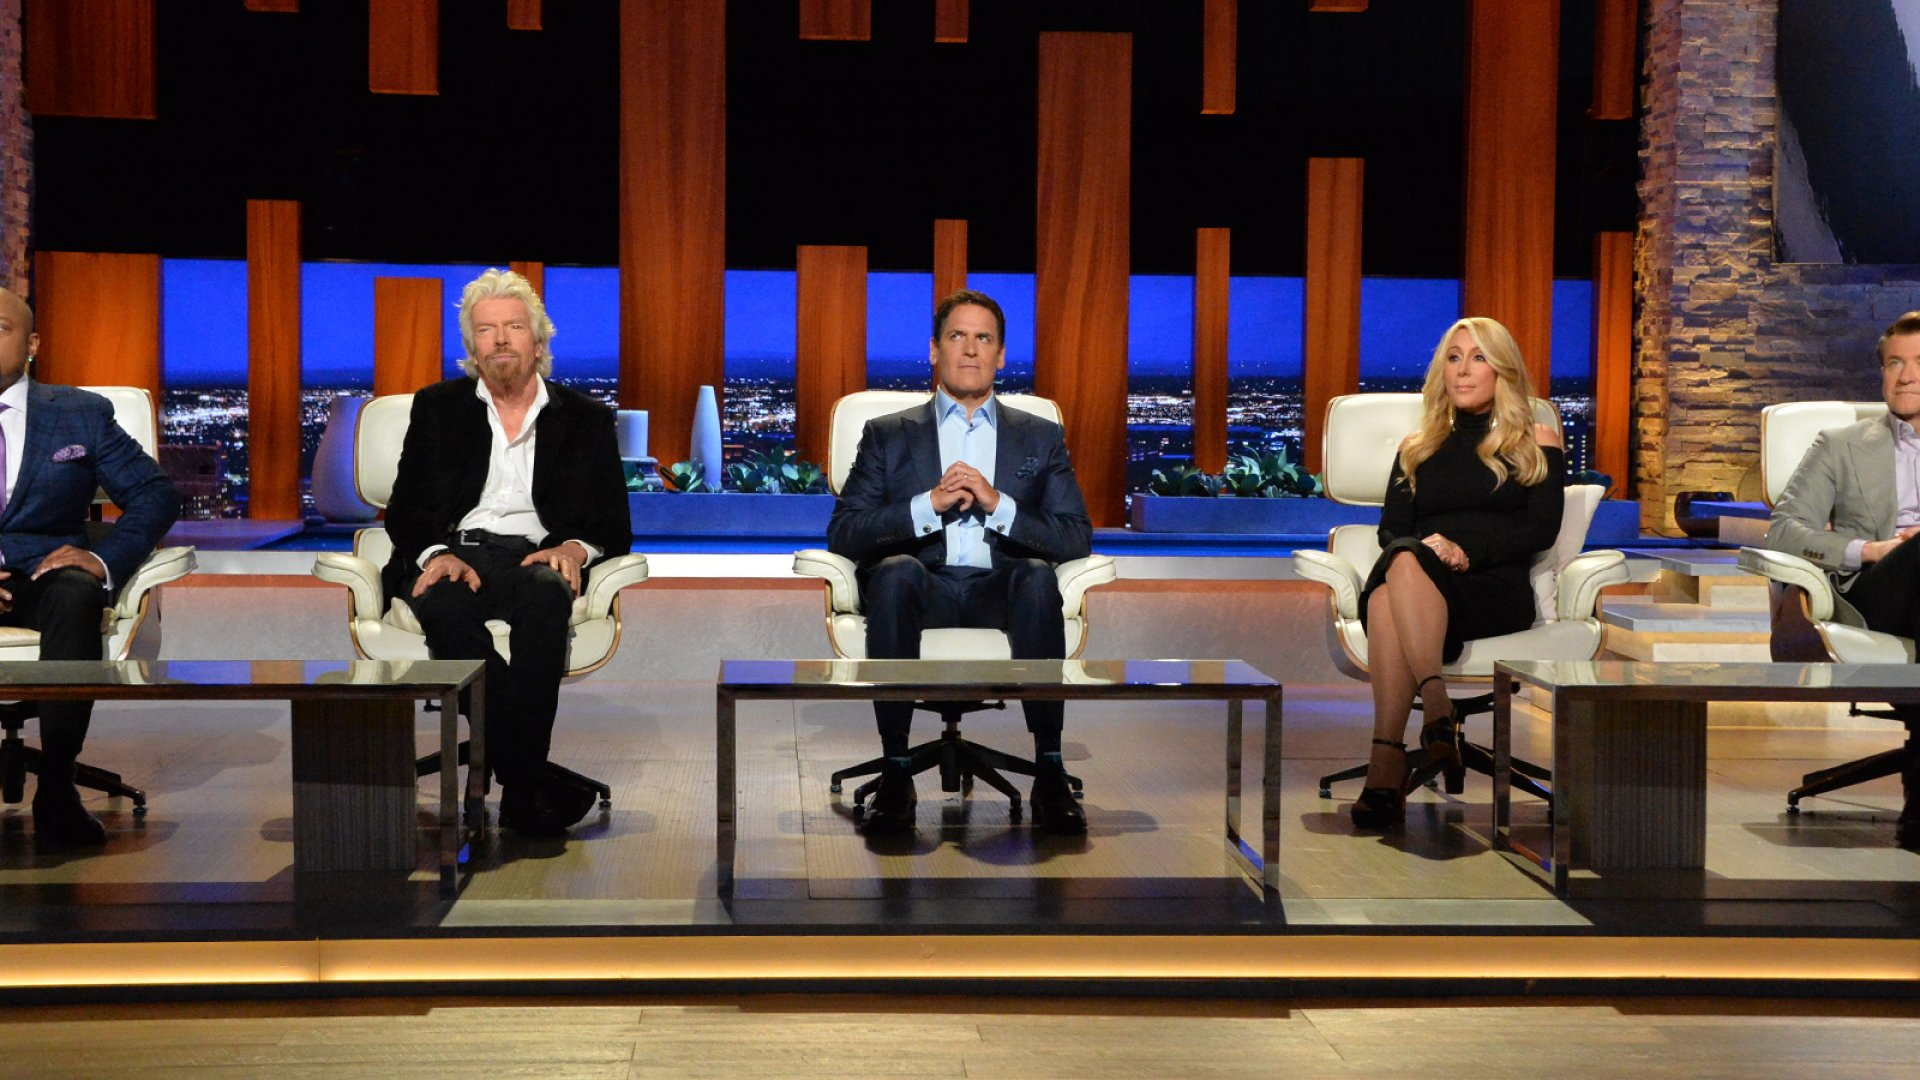 As New 'Shark Tank' Entrepreneurs Take the Stage, Original Contestants Reflect on Lessons Learned